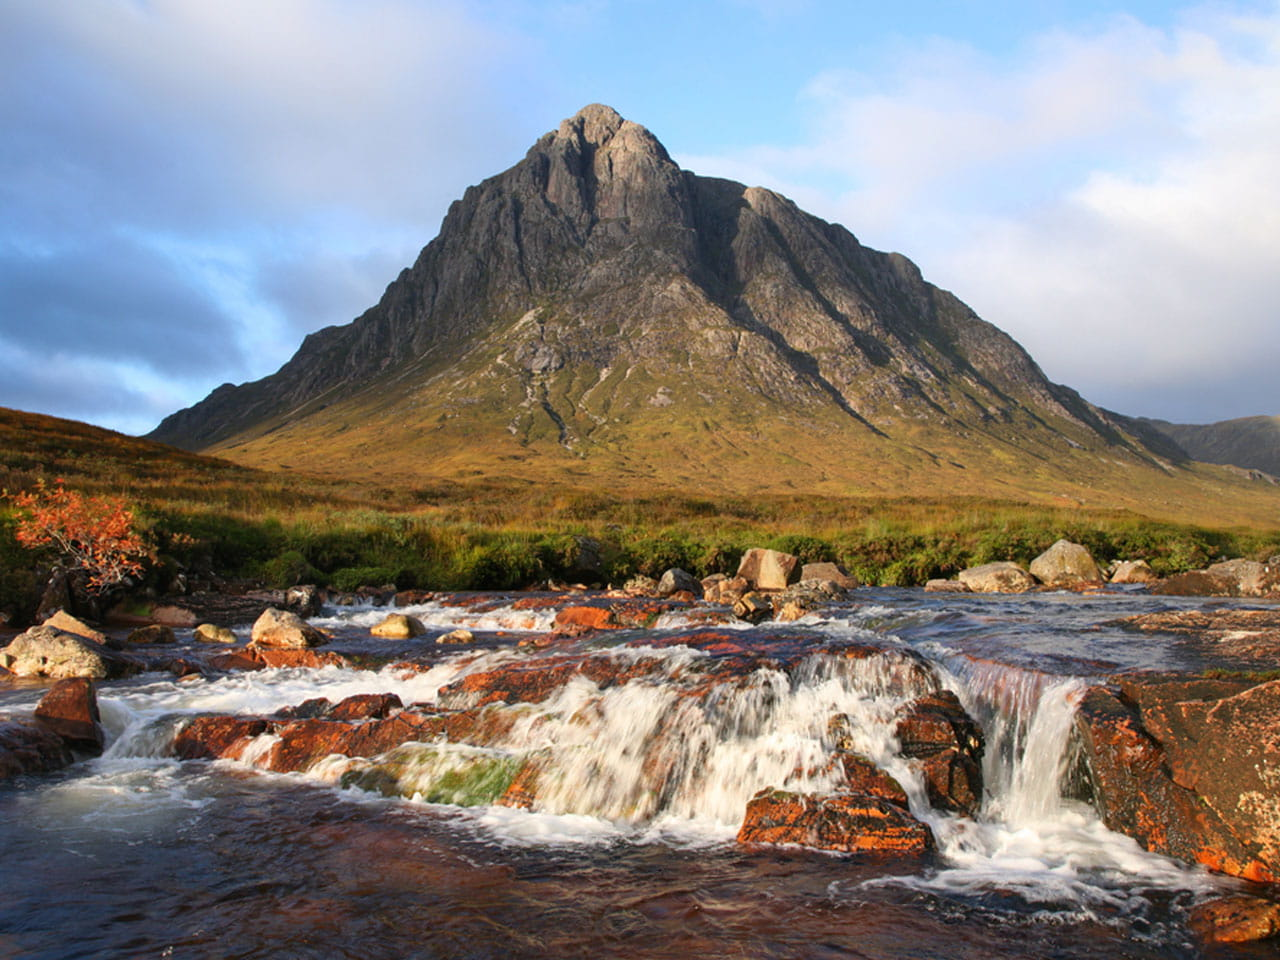 Glen Coe mountain range in Scotland